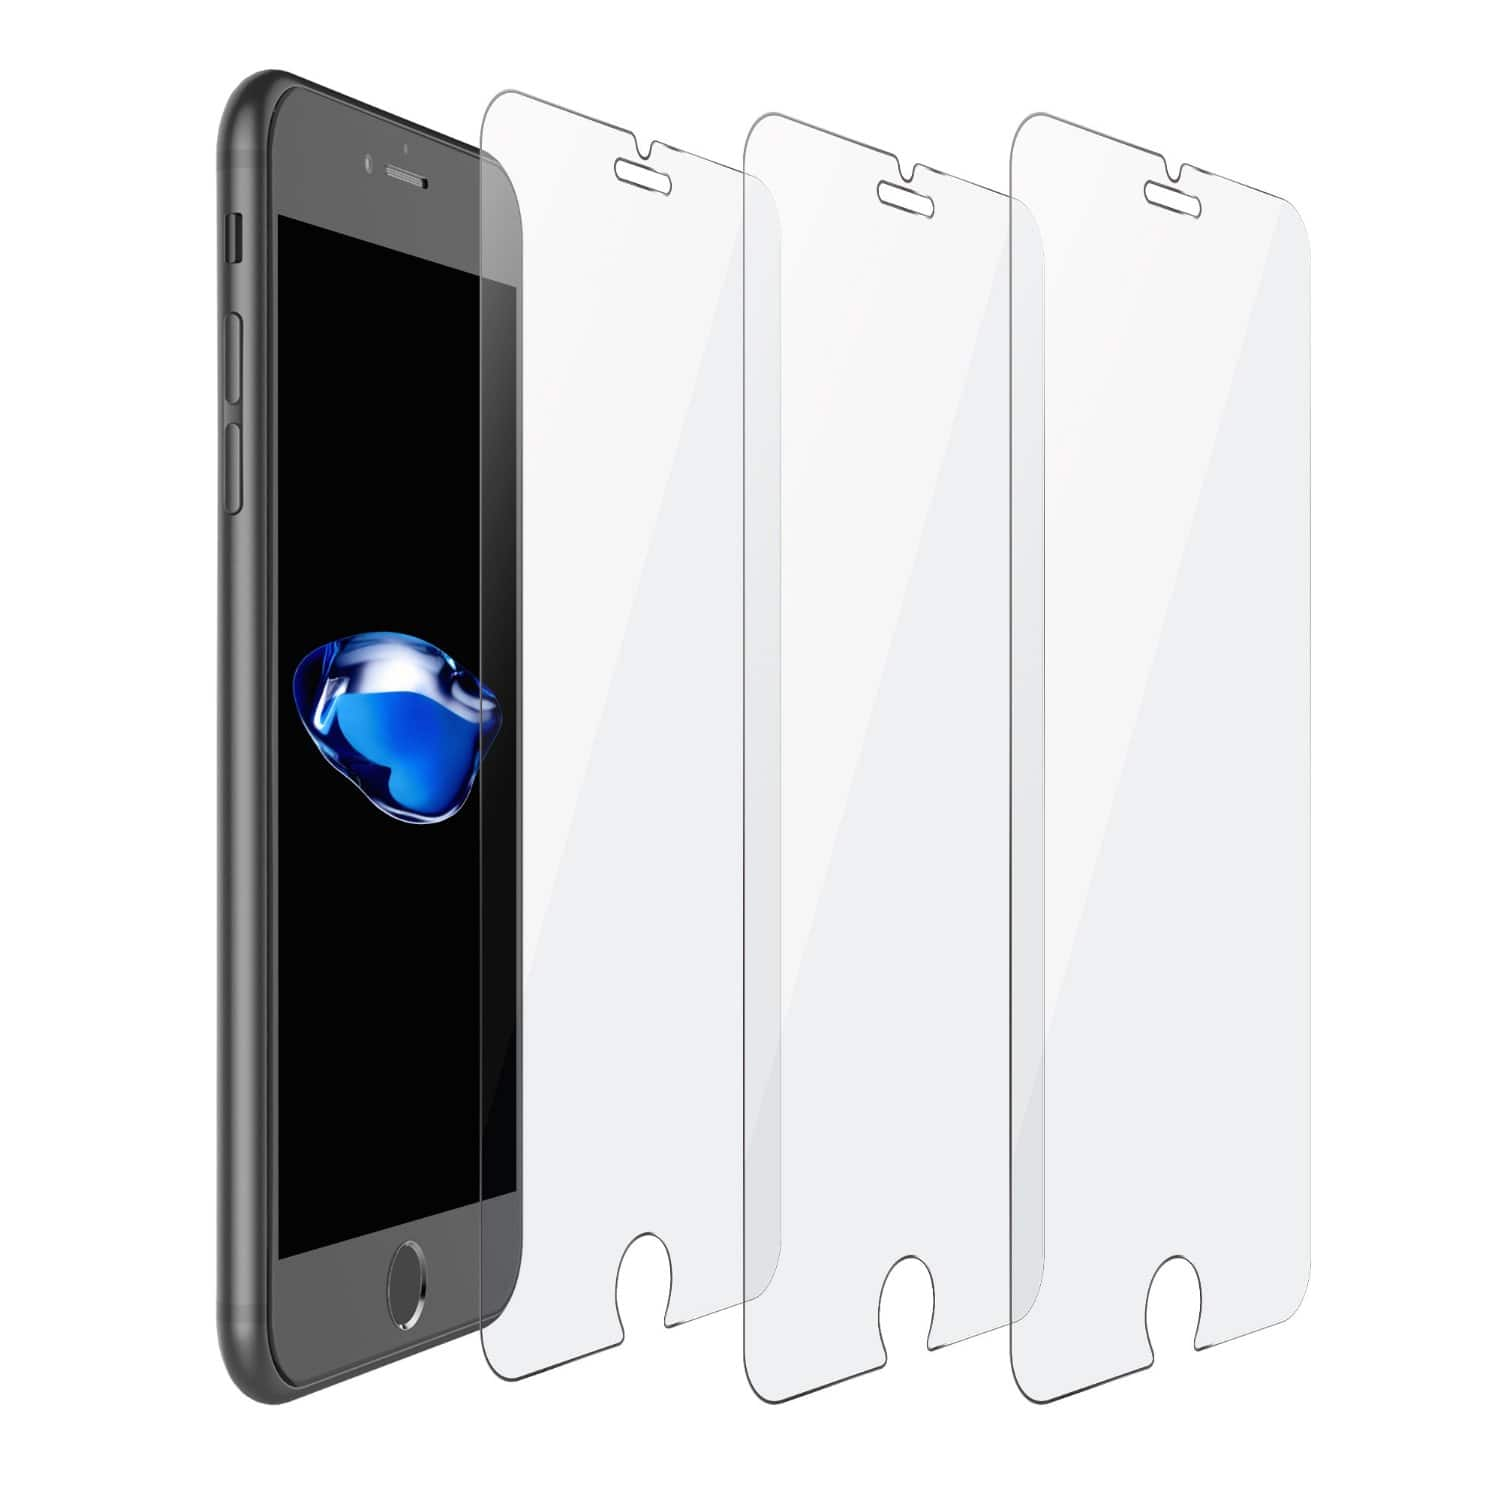 iOrange-E 3 Pack iPhone 7 Tempered Glass Screen Protector $3.99